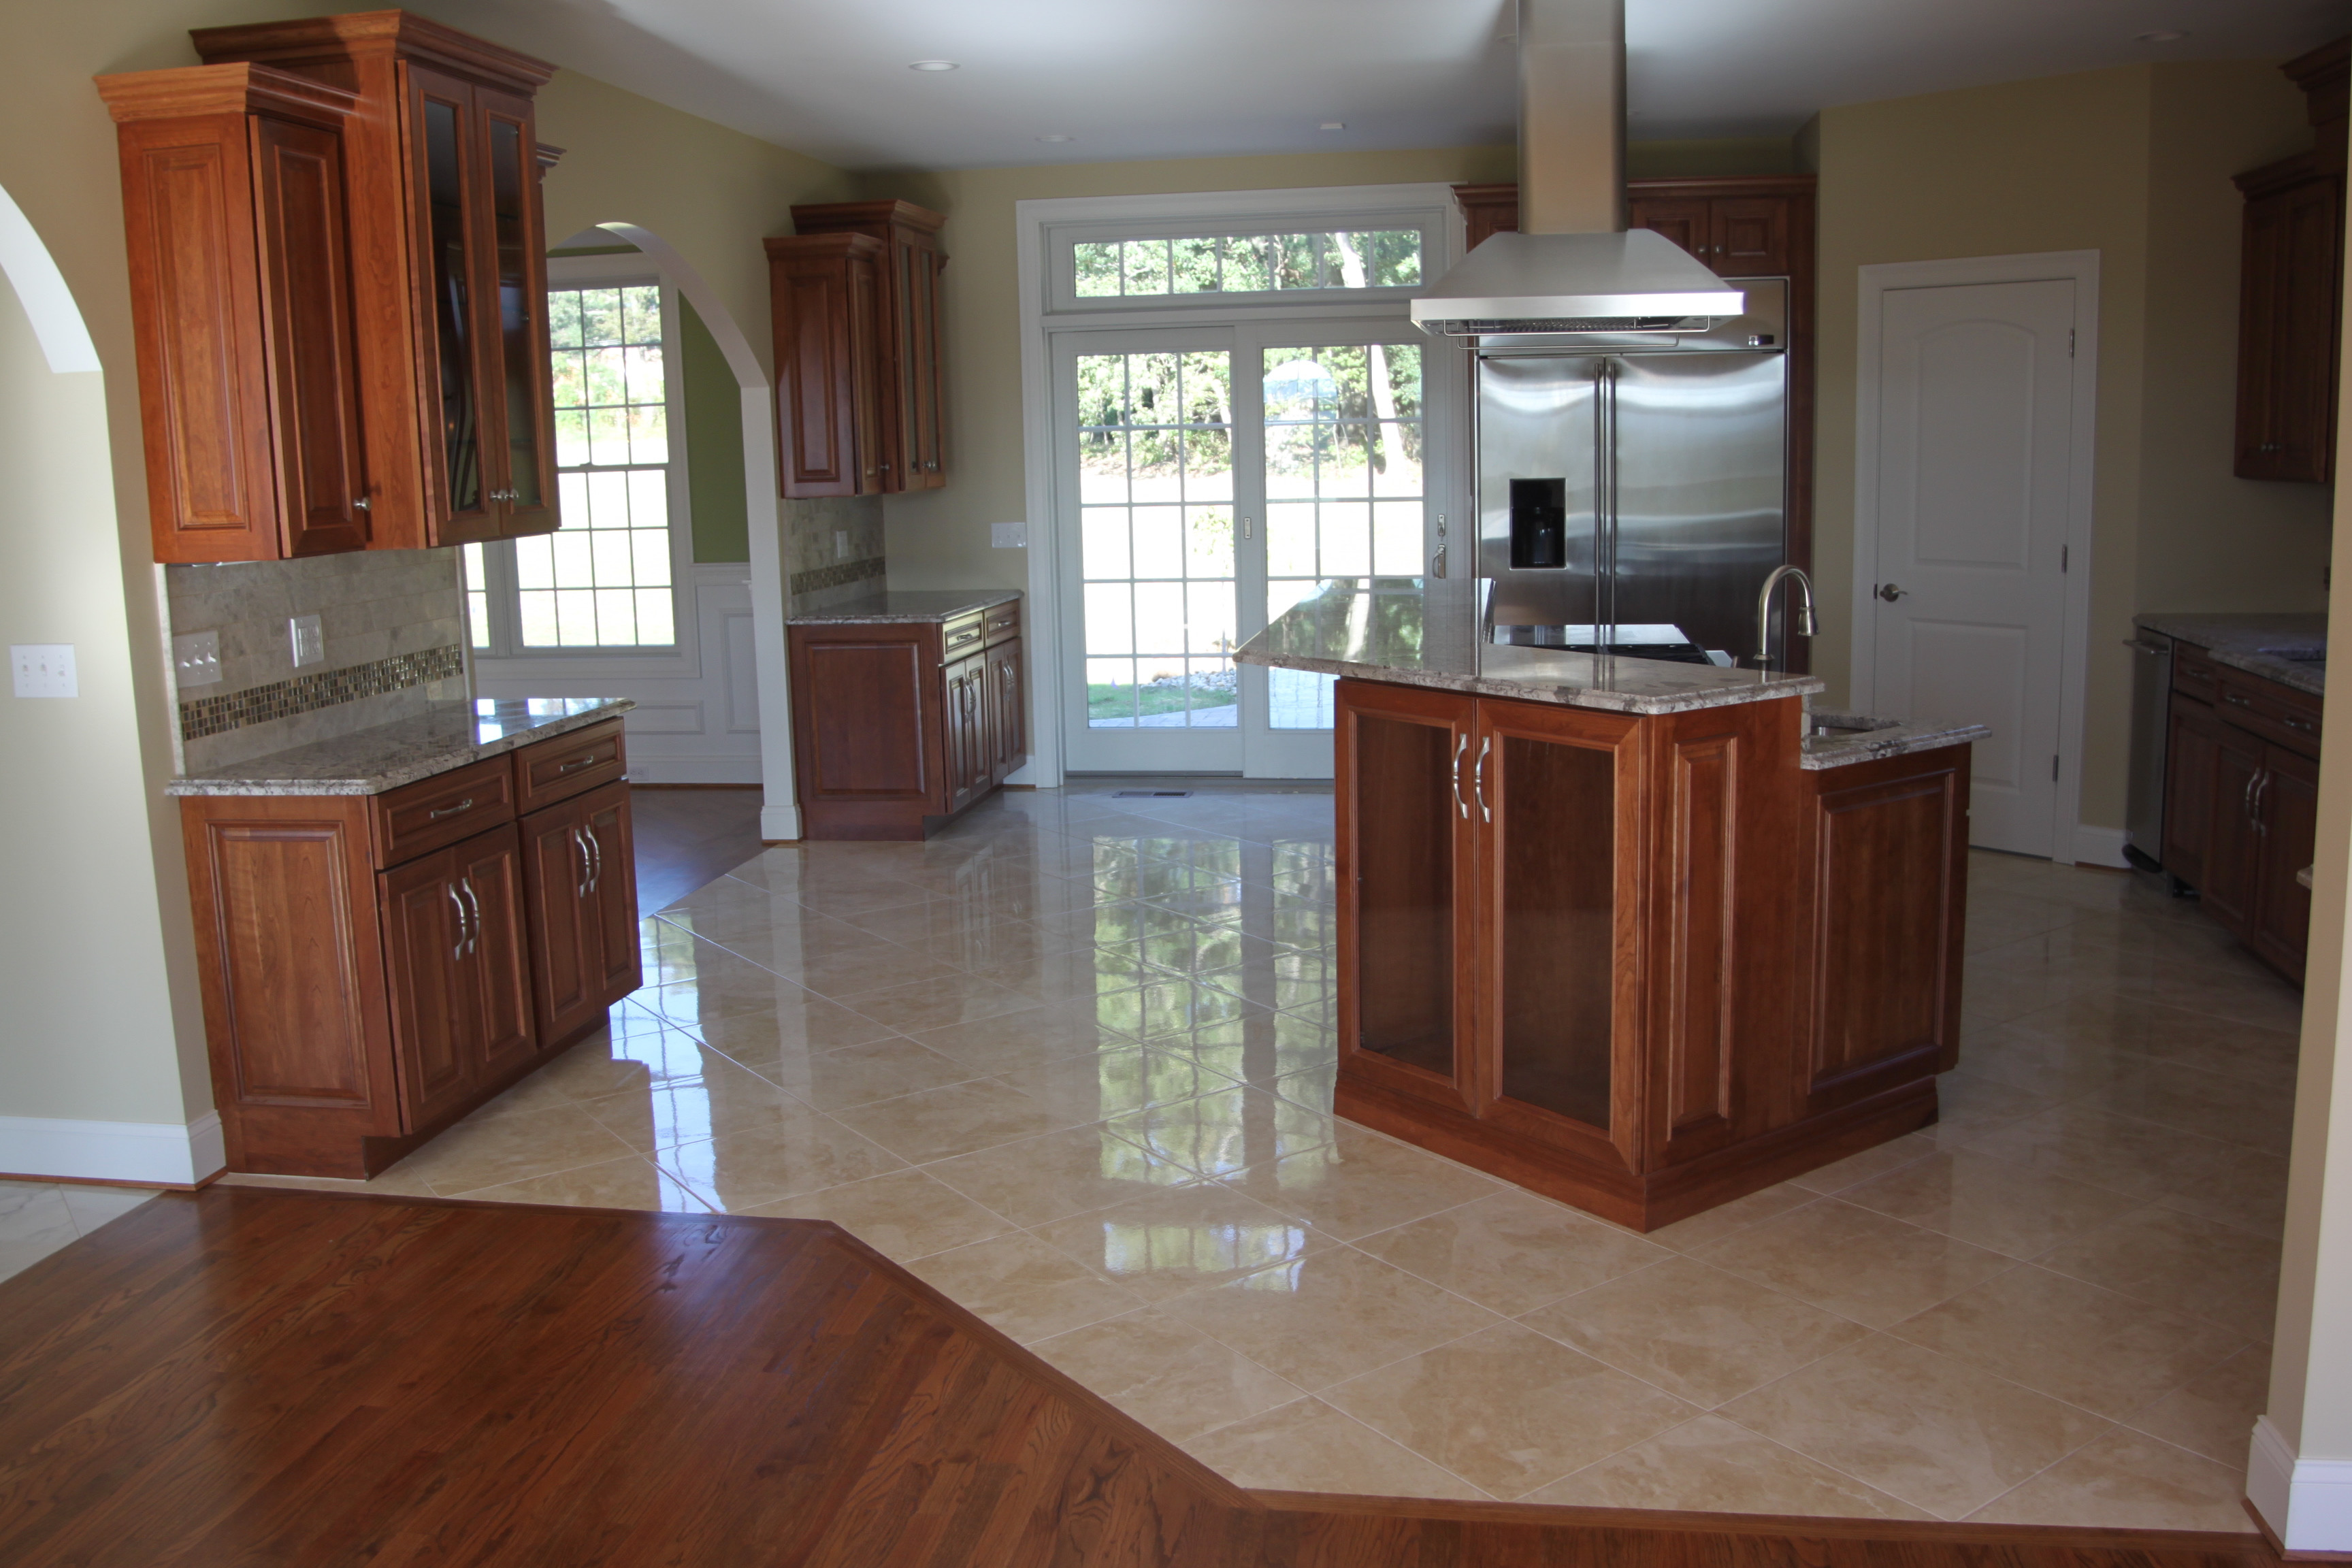 hickory hardwood flooring in kitchen of should your flooring match your kitchen cabinets or countertops in floor wall tile